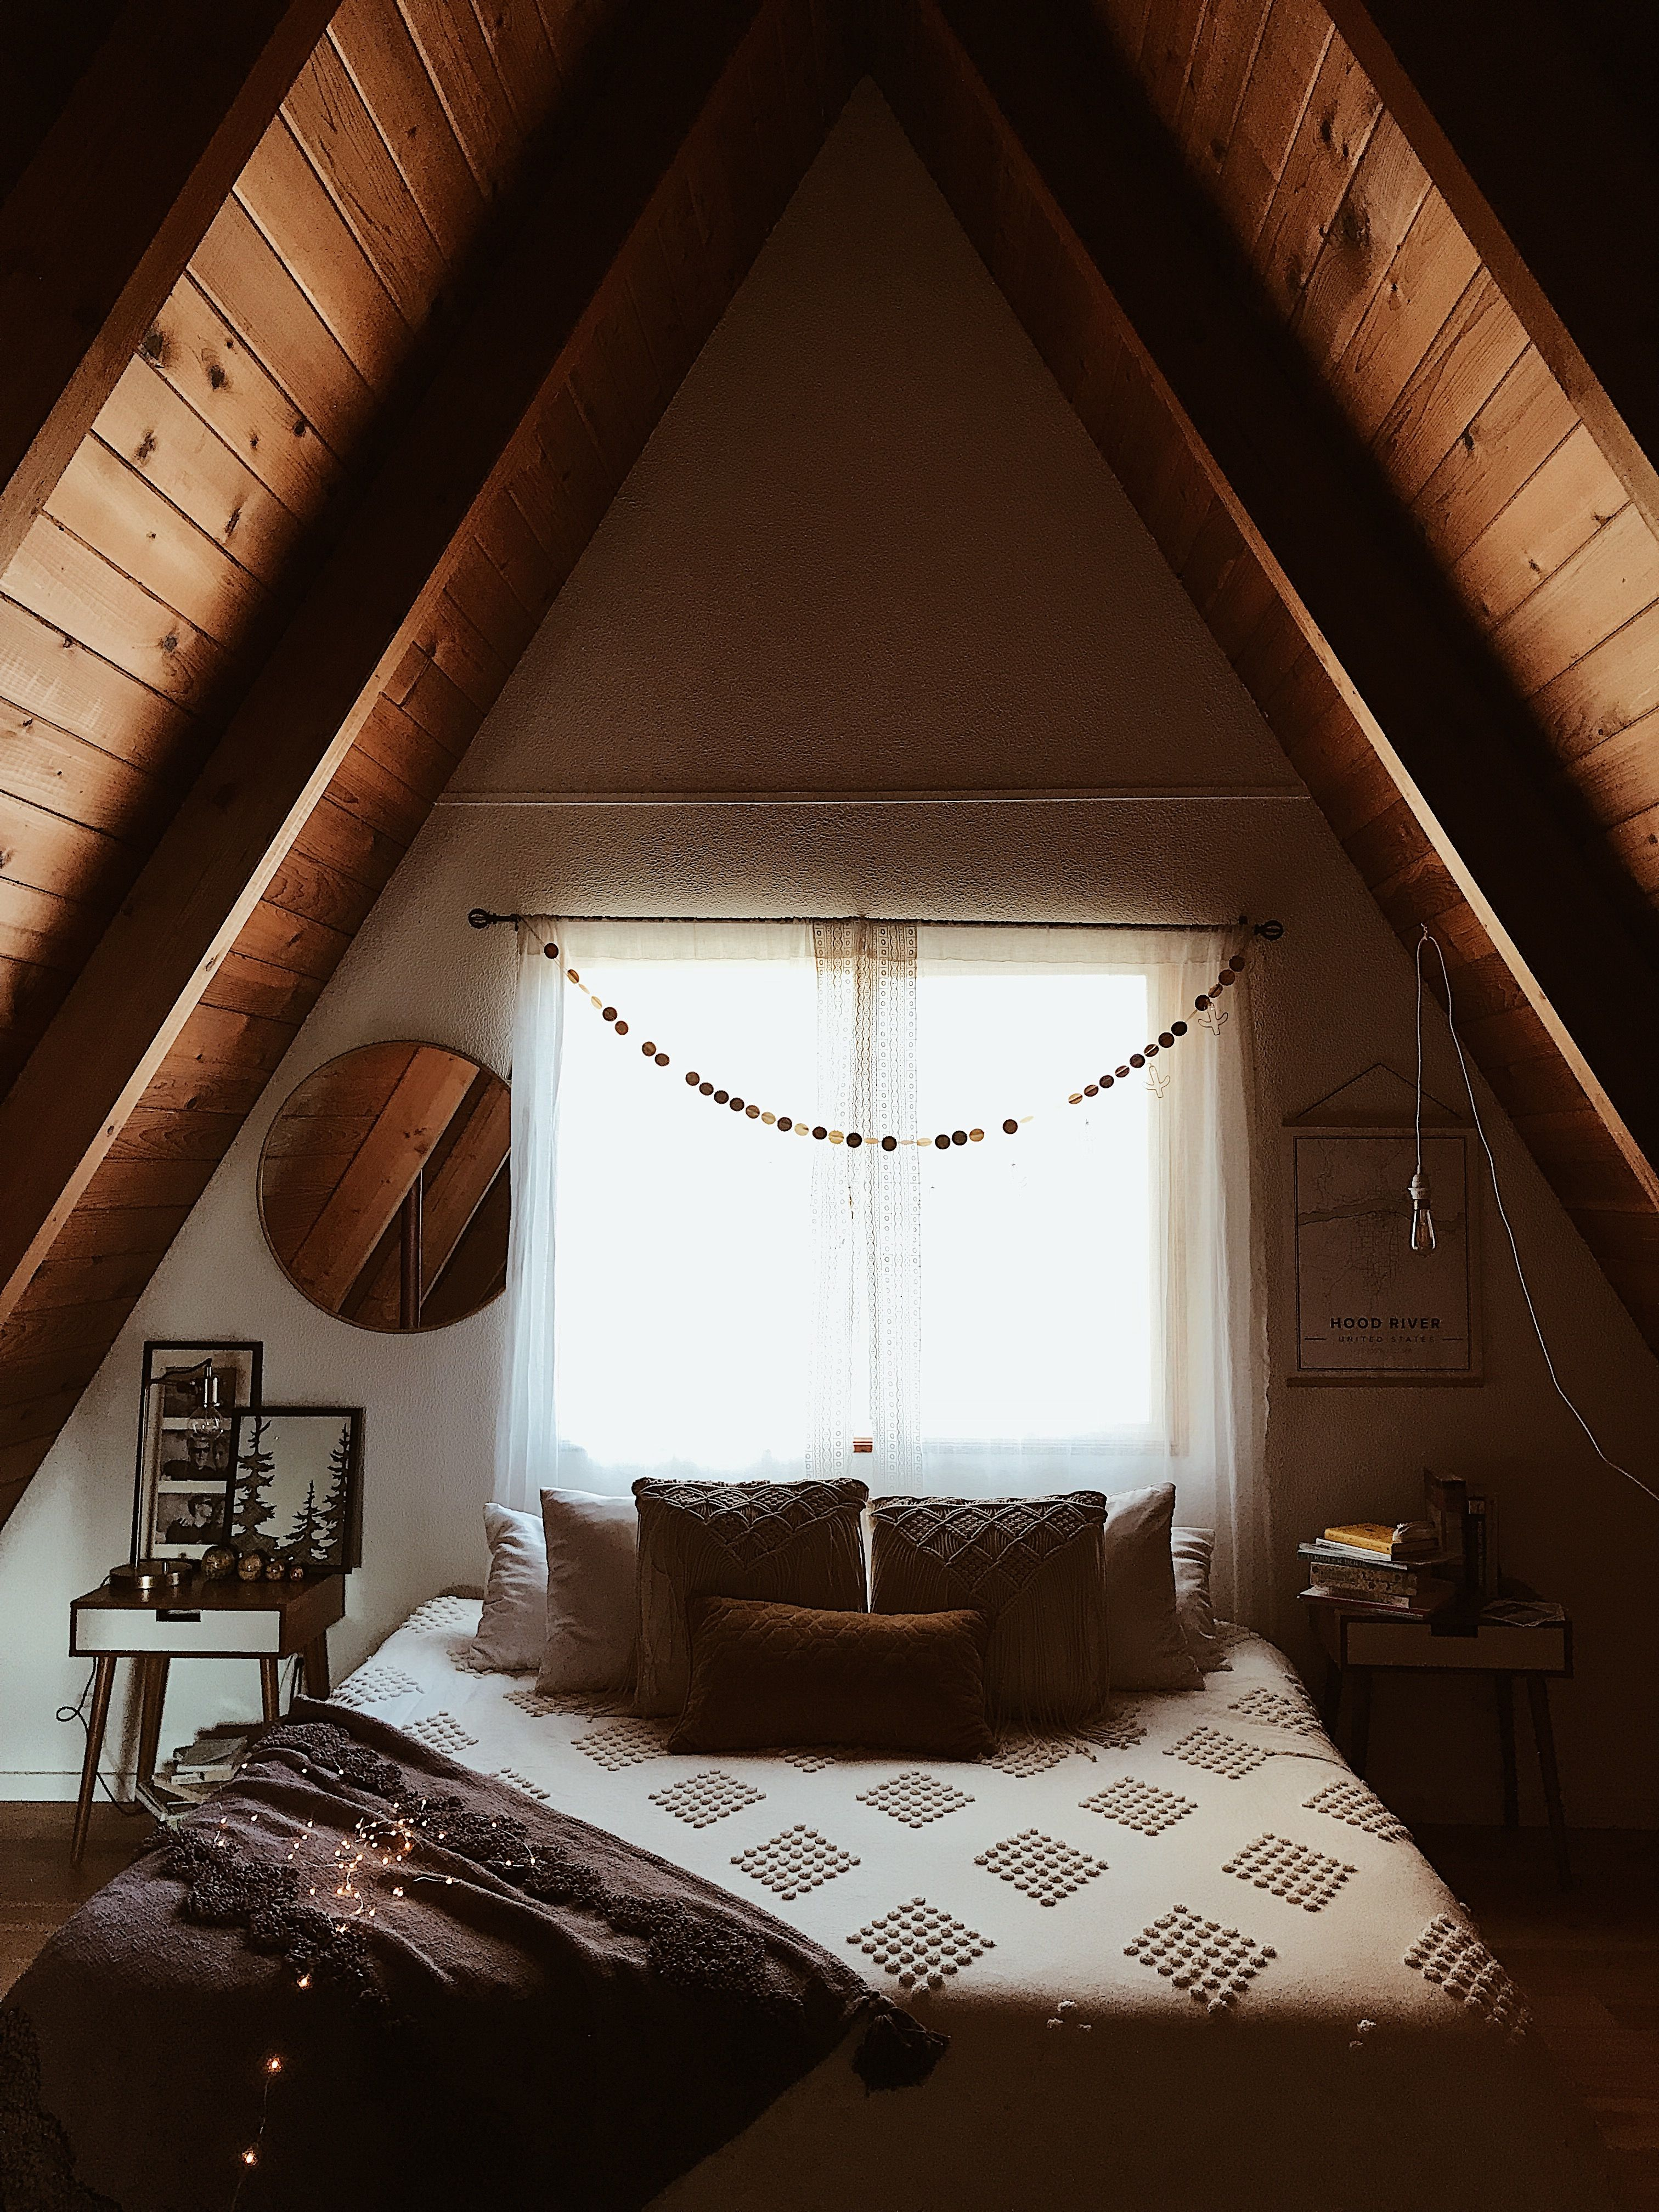 How To Decorate Home To Feel Like A Cozy Cabin With Images